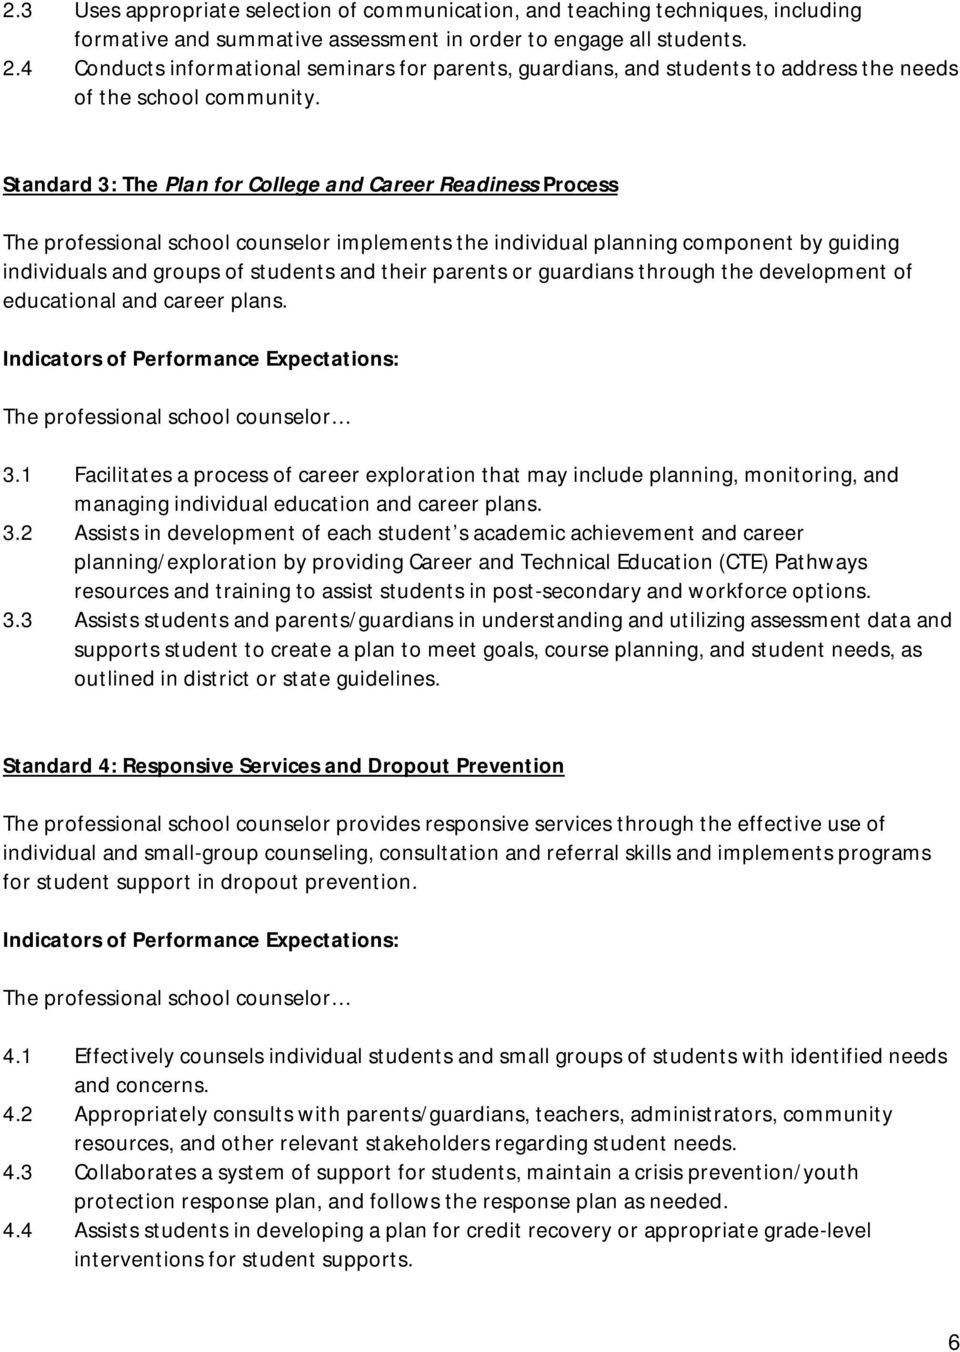 Standard 3: The Plan for College and Career Readiness Process The professional school counselor implements the individual planning component by guiding individuals and groups of students and their